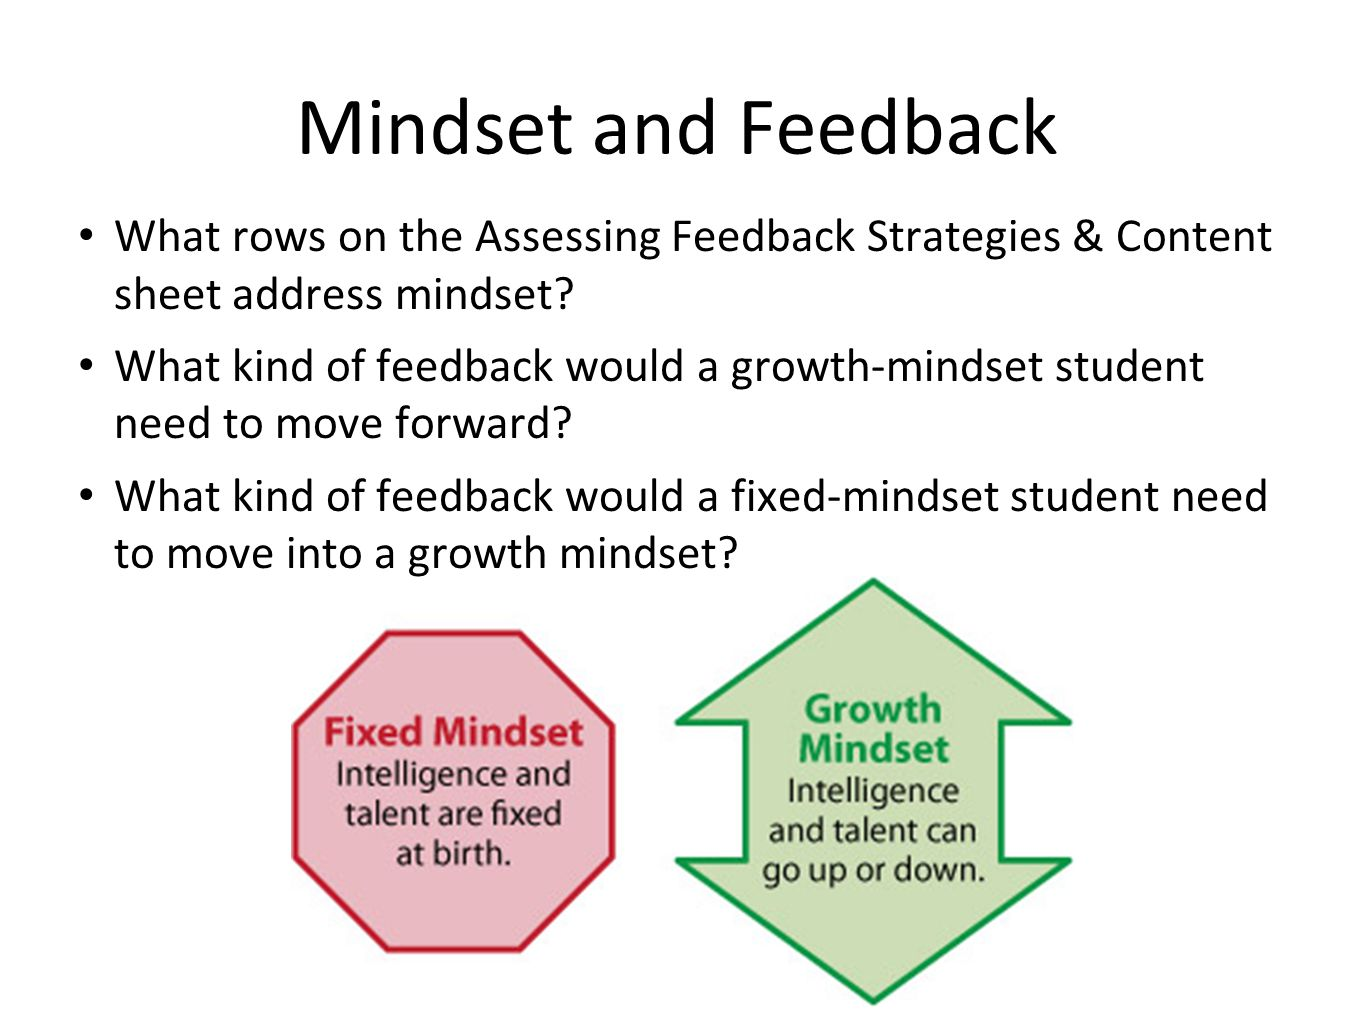 Mindset and Feedback What rows on the Assessing Feedback Strategies & Content sheet address mindset